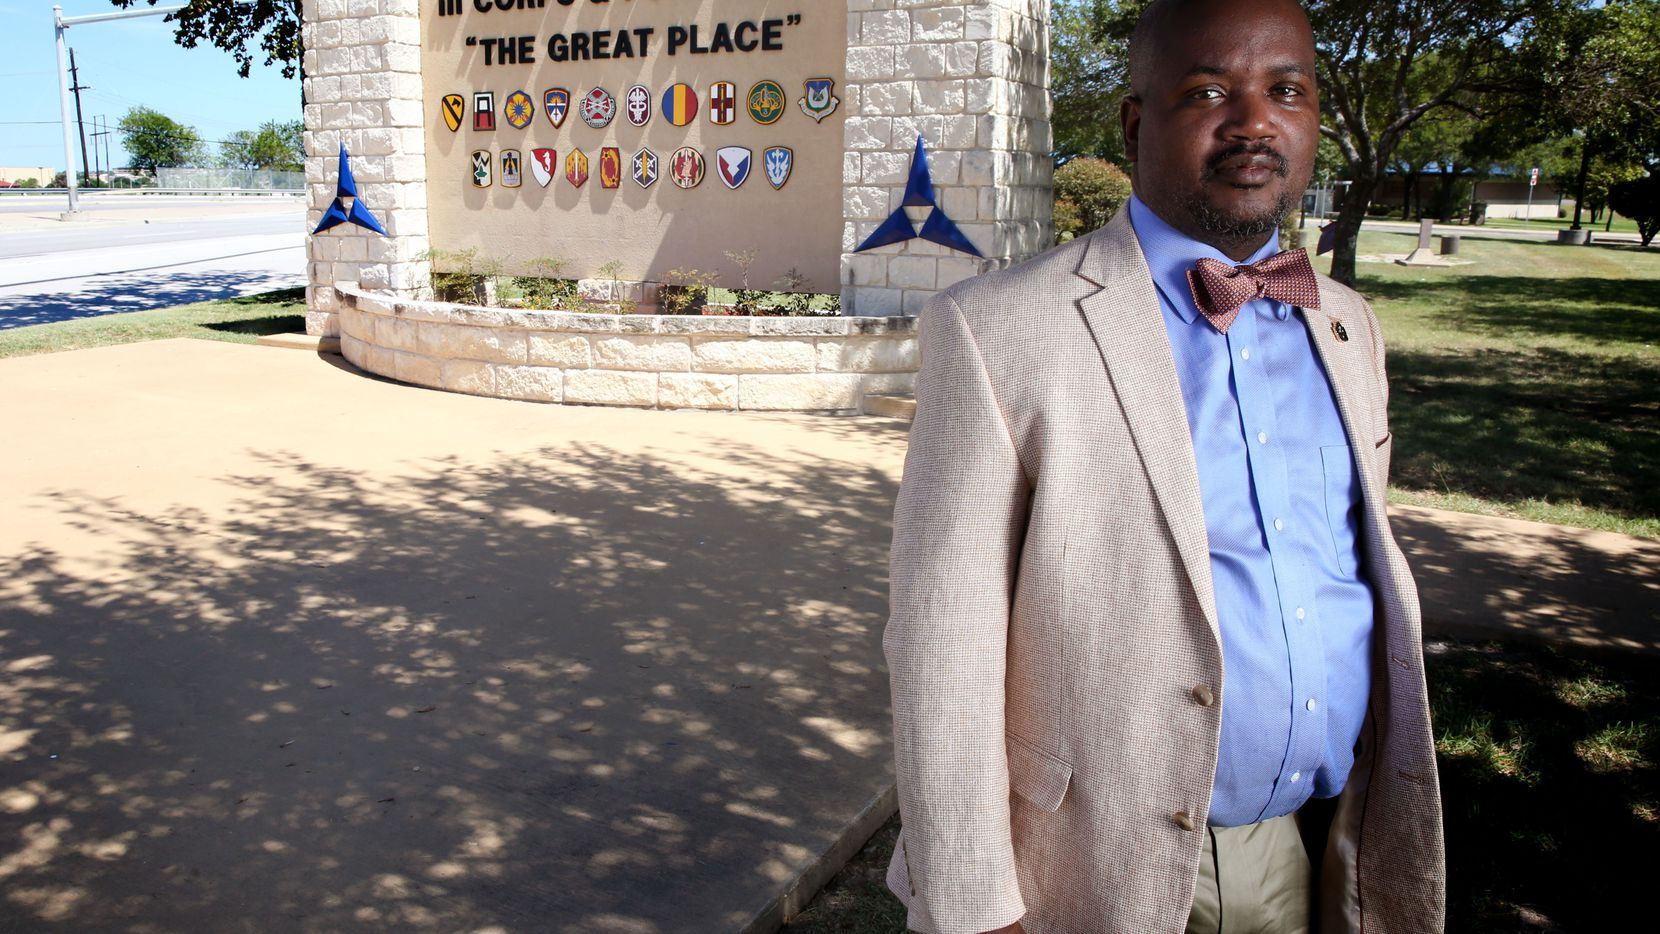 Riakos Adams, a former secretary of the Killeen chapter of the NAACP, poses for a photograph outside the Fort Hood U.S. military post in Fort Hood, Texas on Tuesday, Aug. 22, 2017. Some, including Adams, say Fort Hood, one of the largest military bases in the world and a garrison named in honor of Confederate Gen. John Bell Hood, should be renamed. (Rose Baca/The Dallas Morning News)